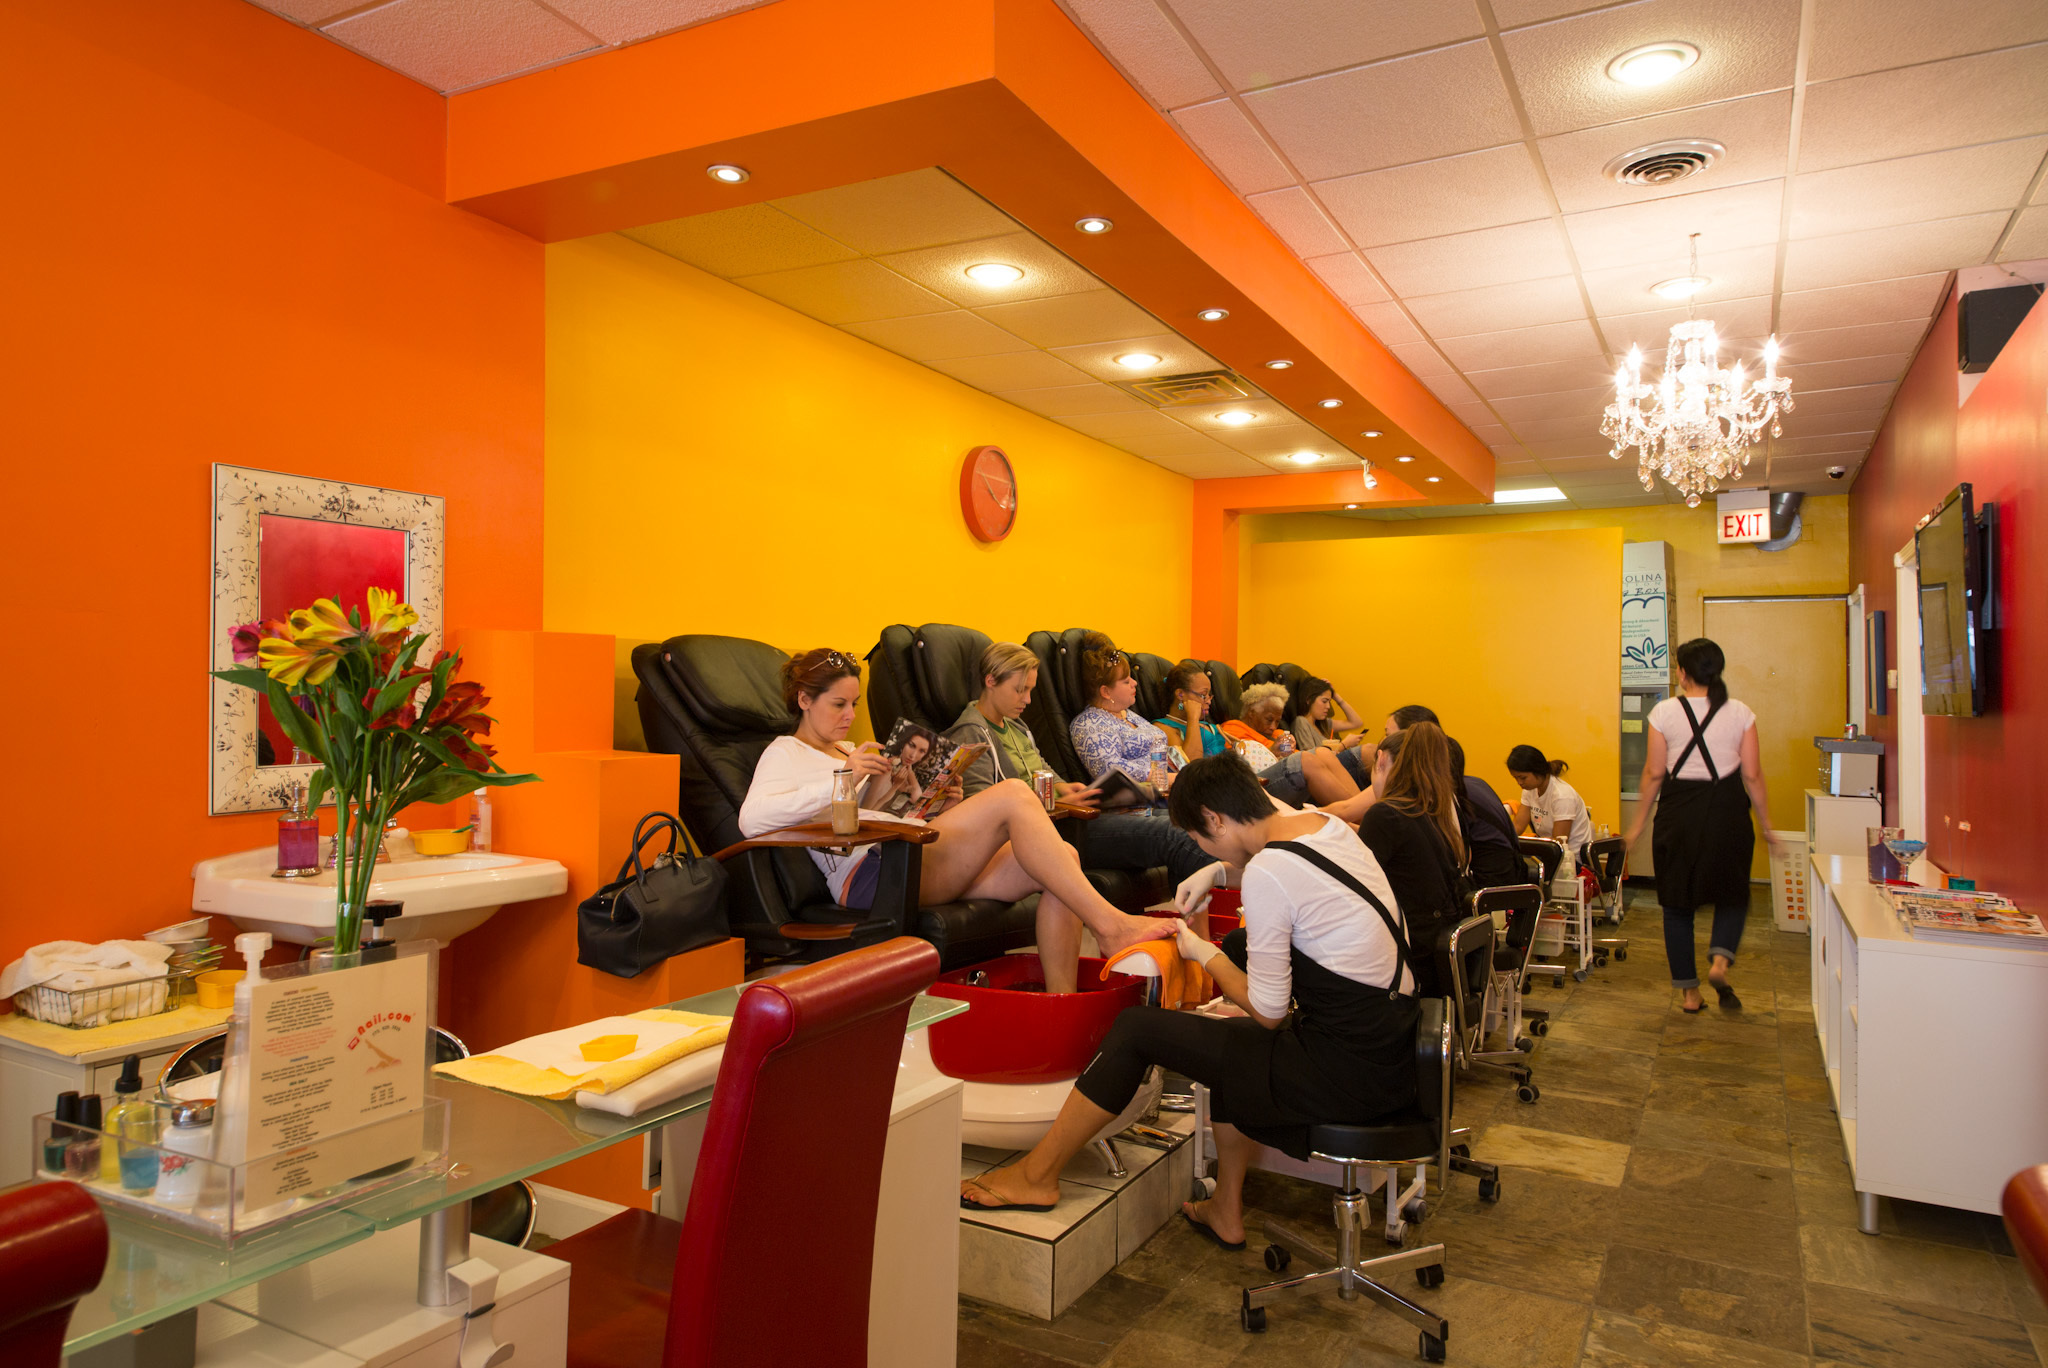 24 Nail Salon Nyc Of Nail Salons In Chicago For Manicures Pedicures And Nail Art